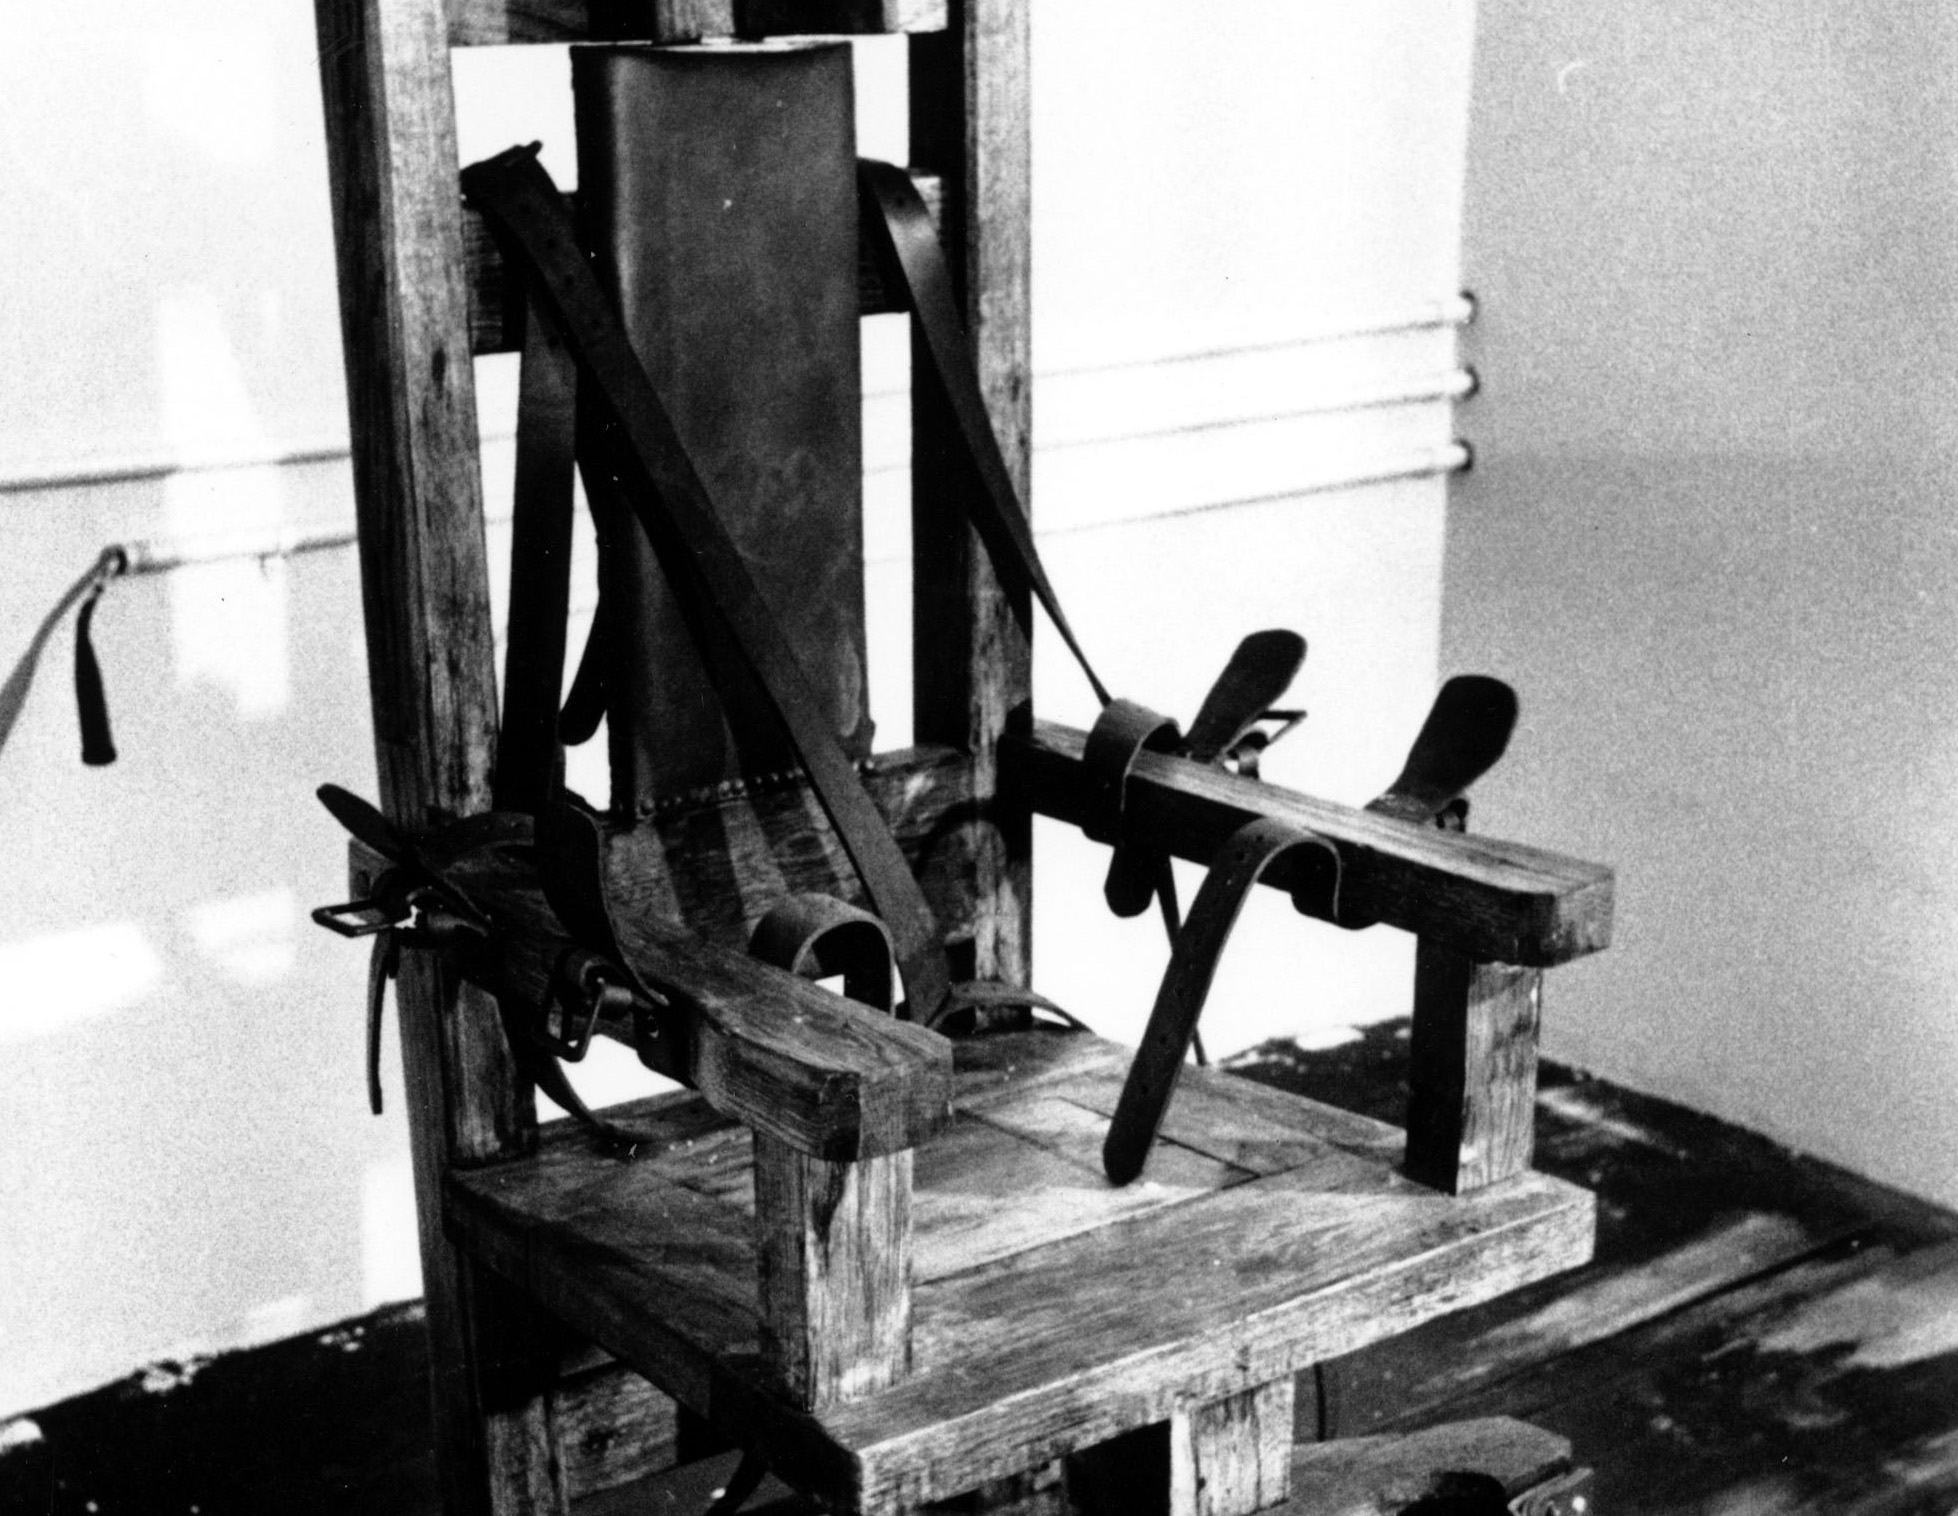 Real electric chair execution photos - Real Electric Chair Execution Photos 9